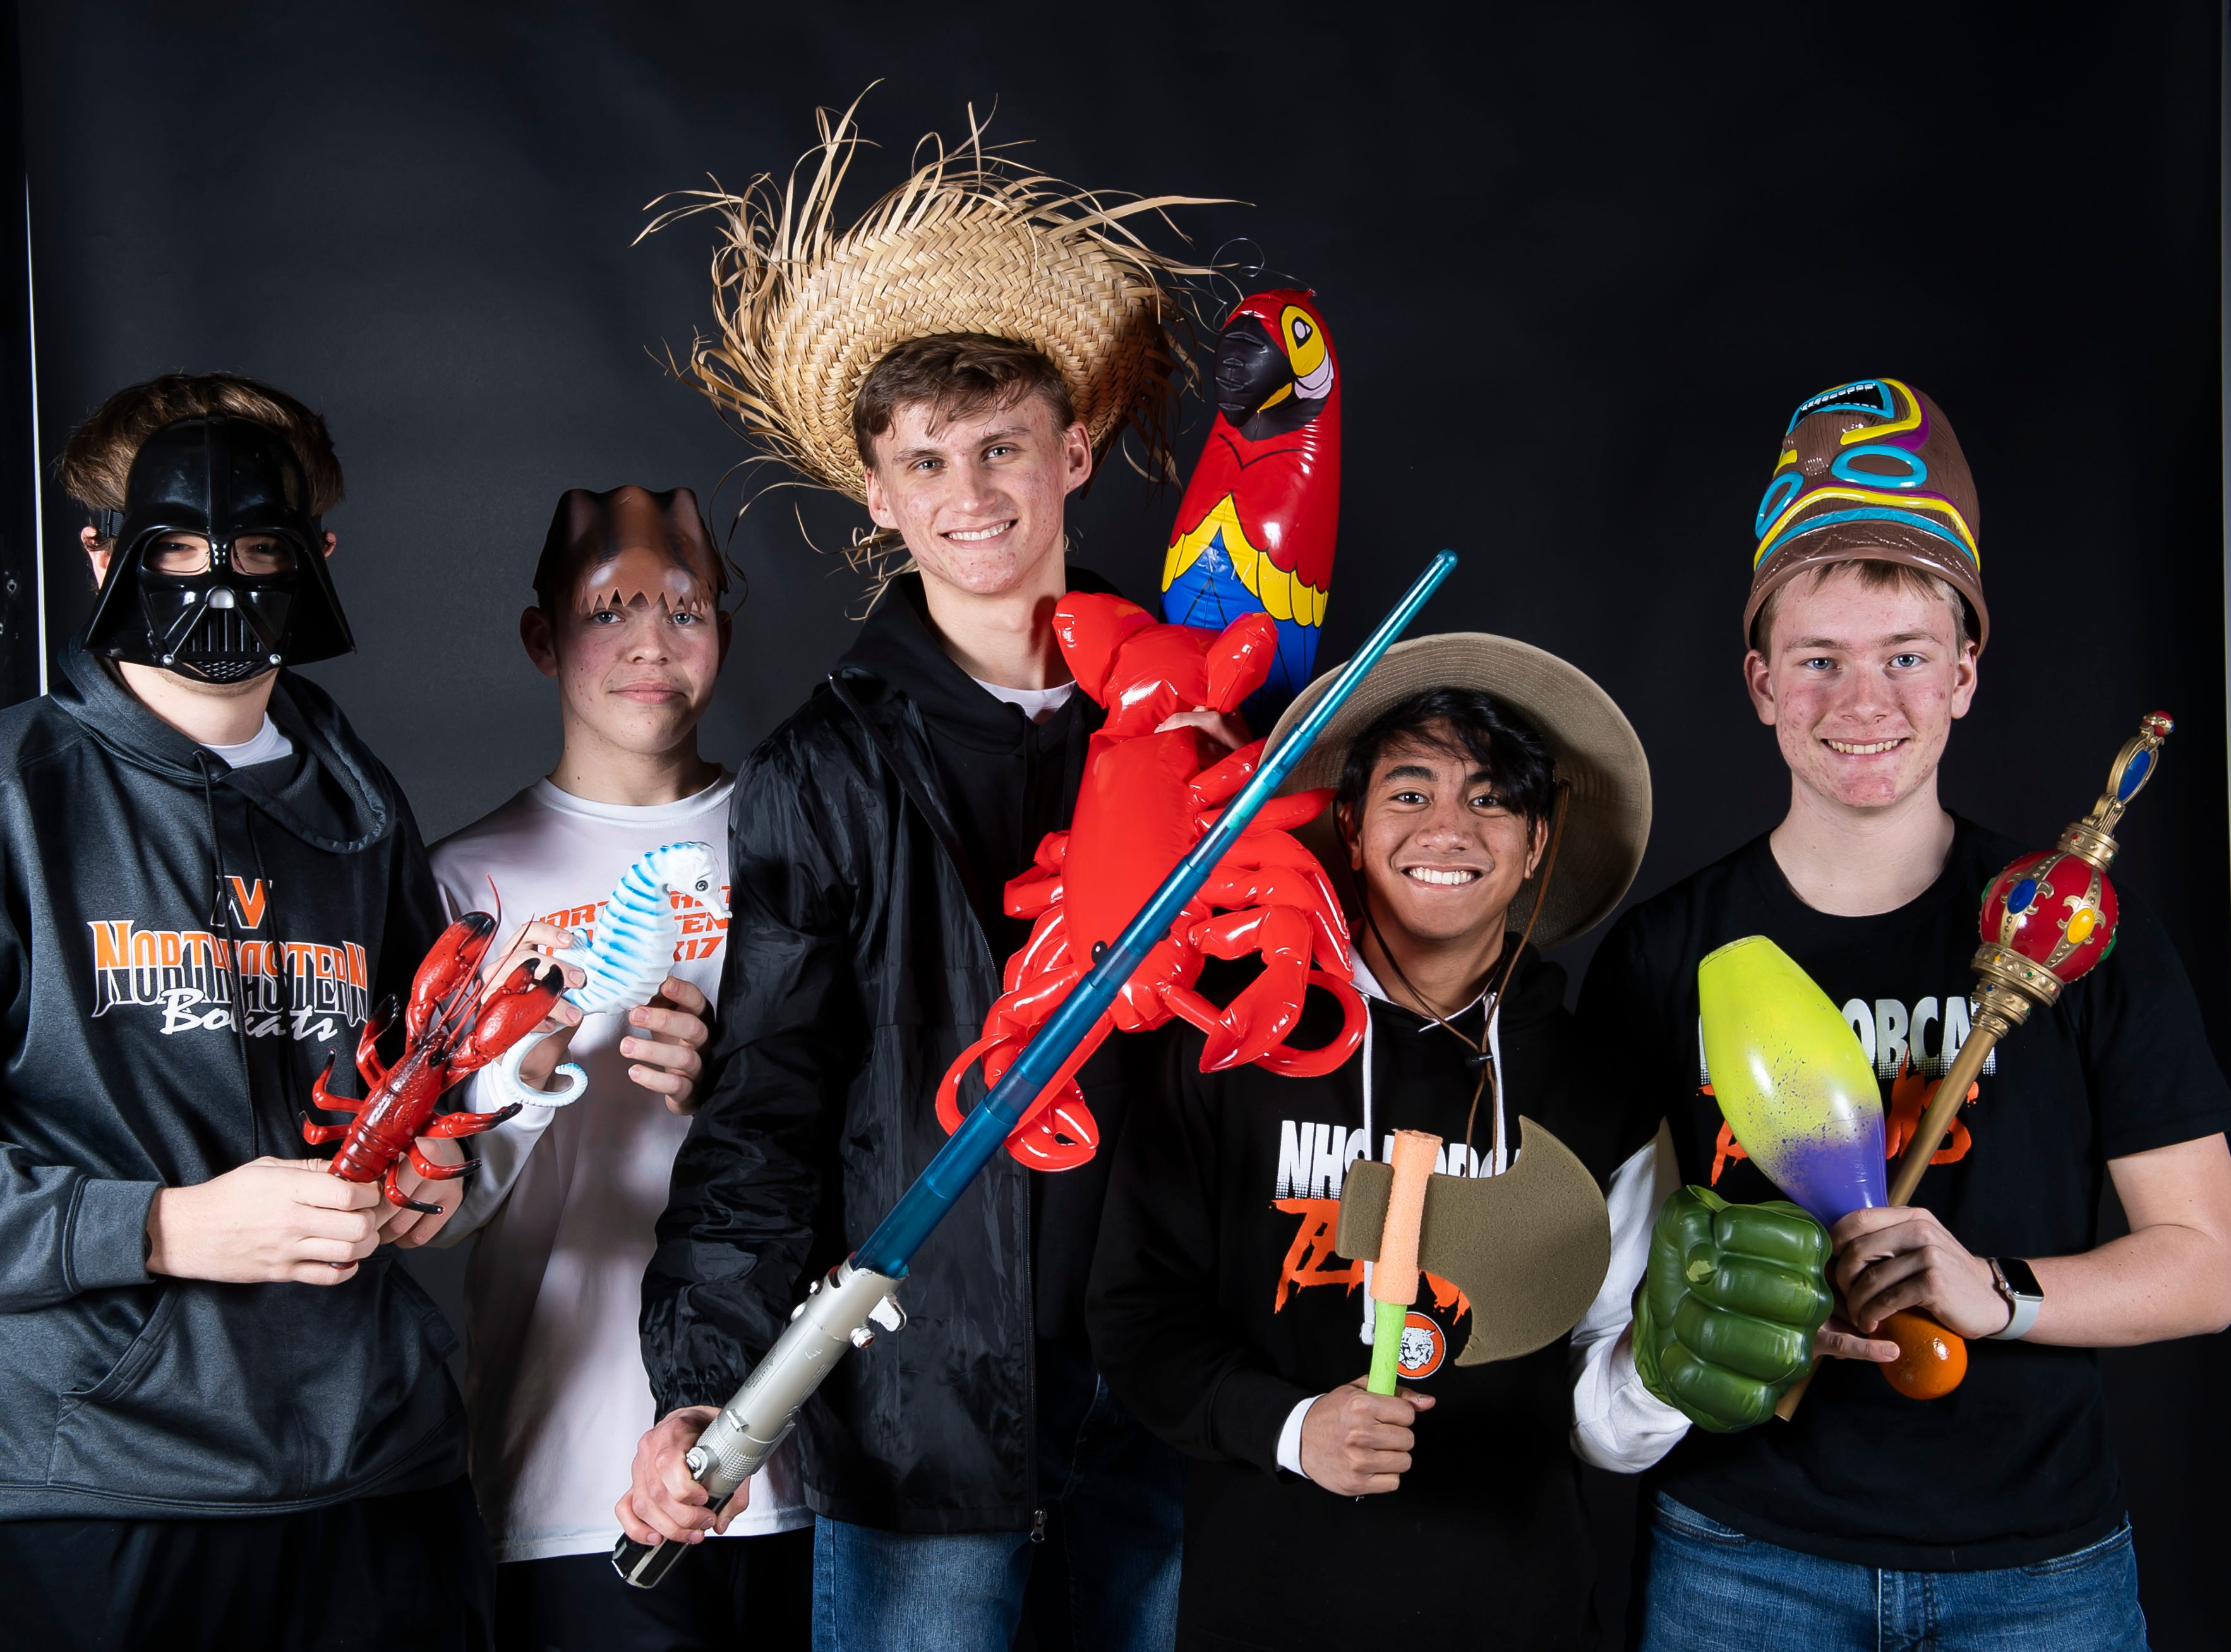 Northeastern tennis players strike a pose in the GameTimePA photo booth during spring sports media day in York Sunday, March 10, 2019.